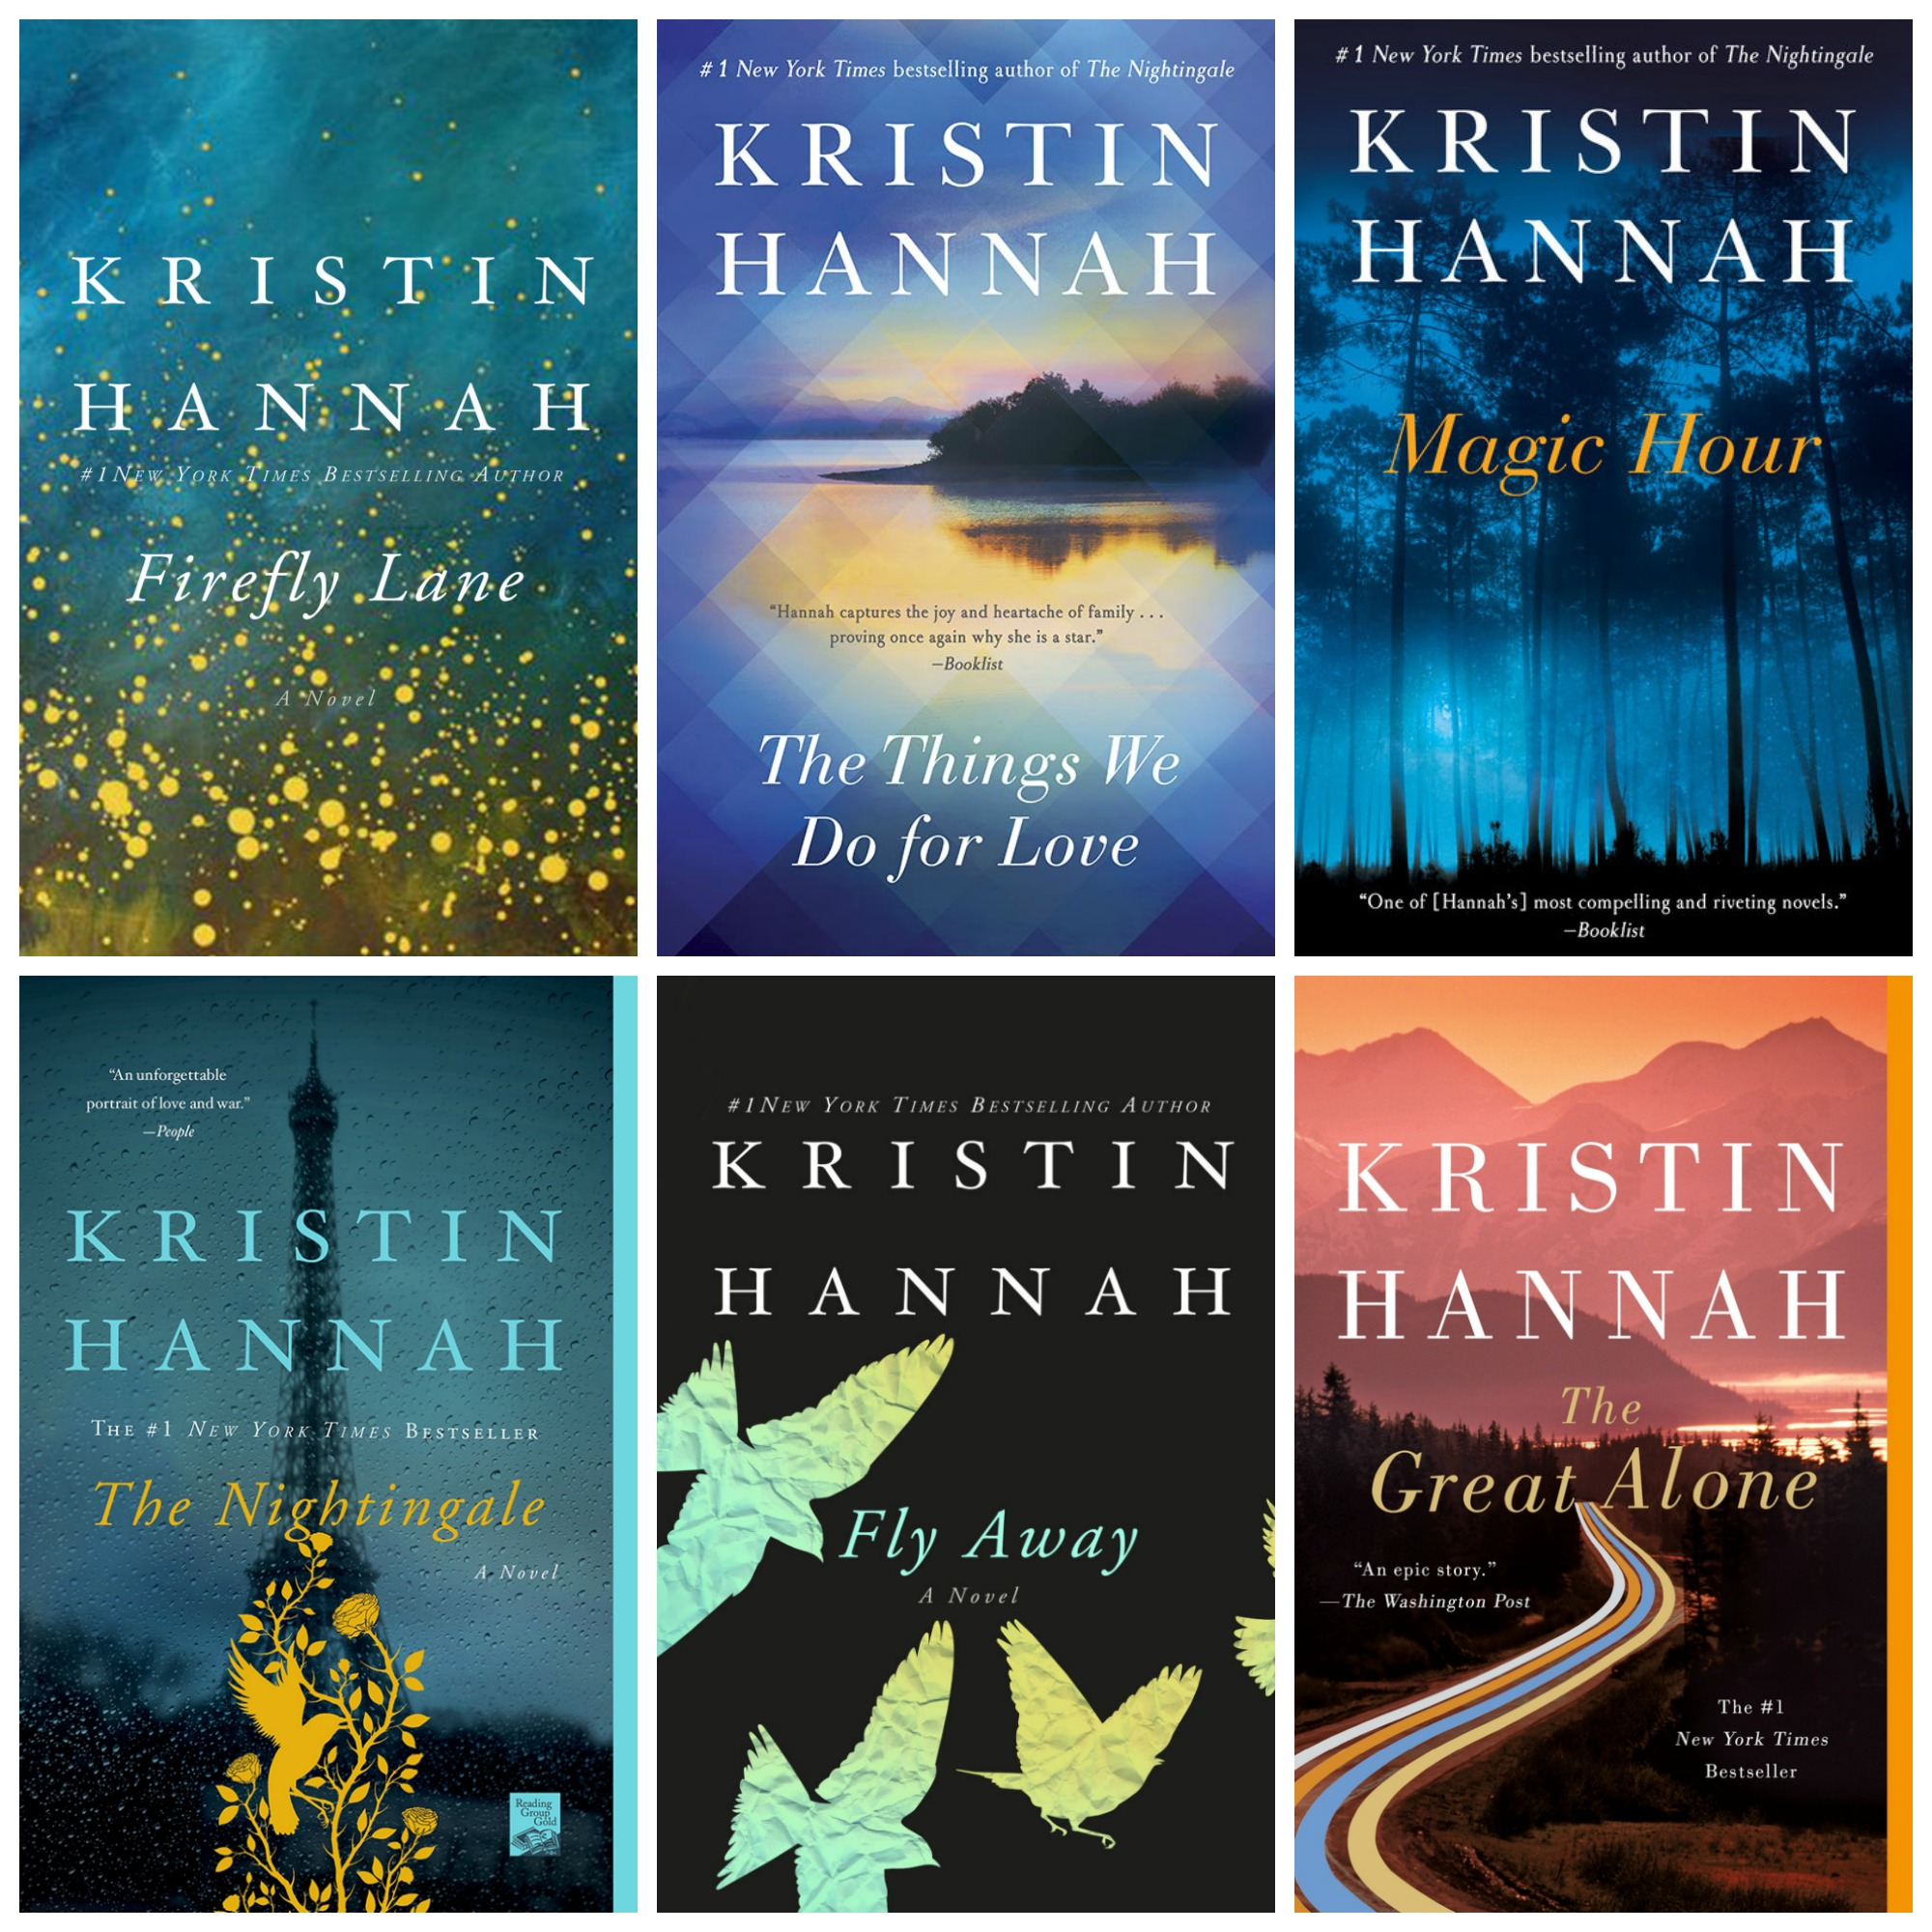 A few of #1 Bestselling Author Kristin Hannah's novels. Hannah lives in the Pacific Northwest (Images: St. Martin's Press)